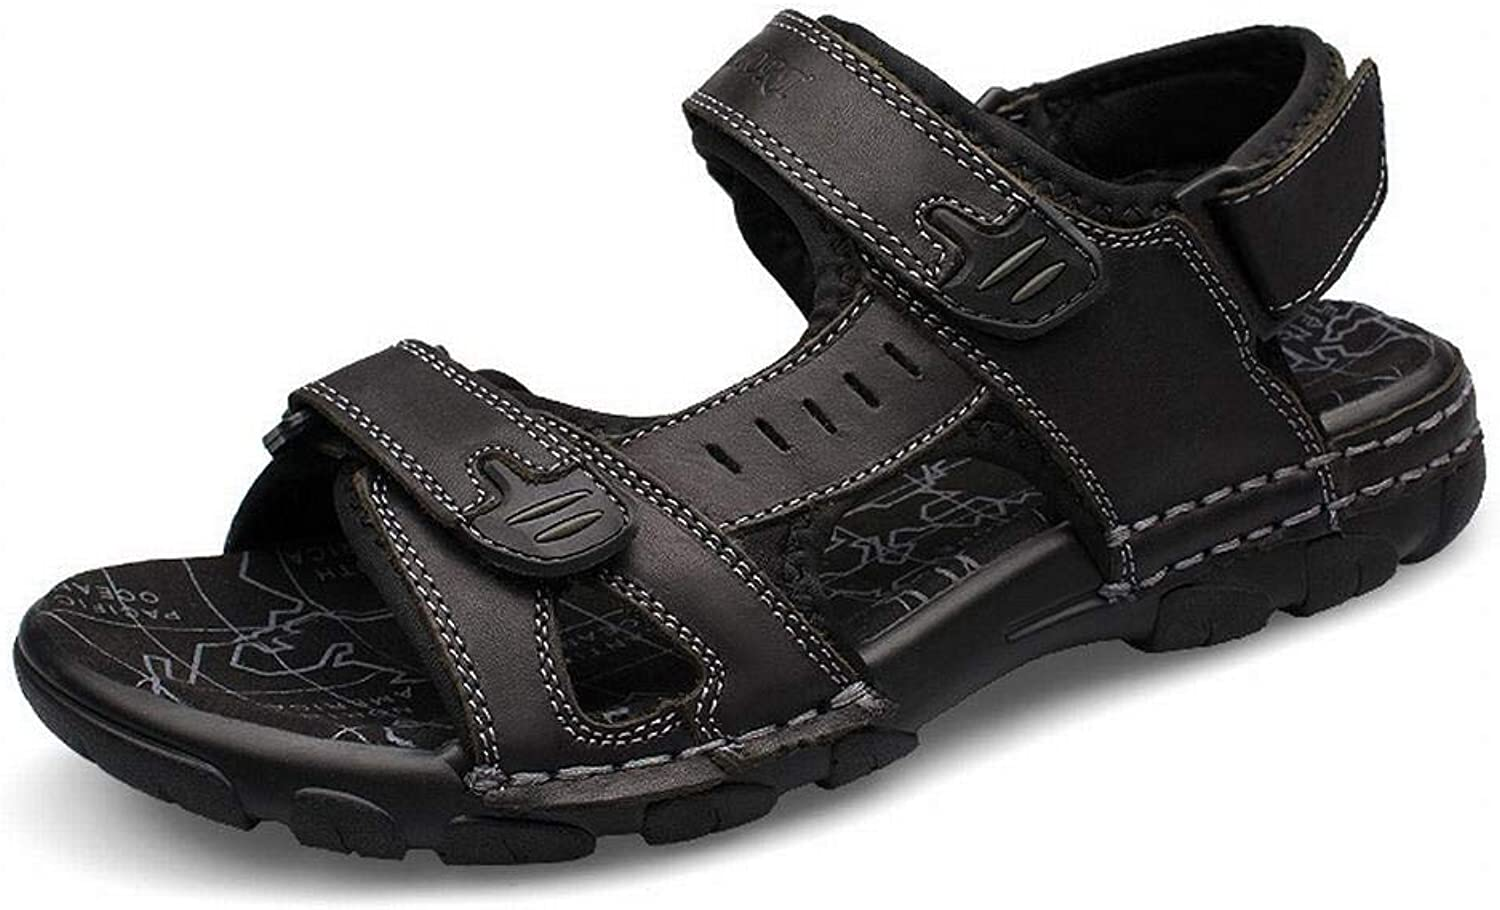 Men's Fashion First Layer Leather Sandals Men's Beach Men's shoes Summer Leather Sandals (color   Black, Size   42)